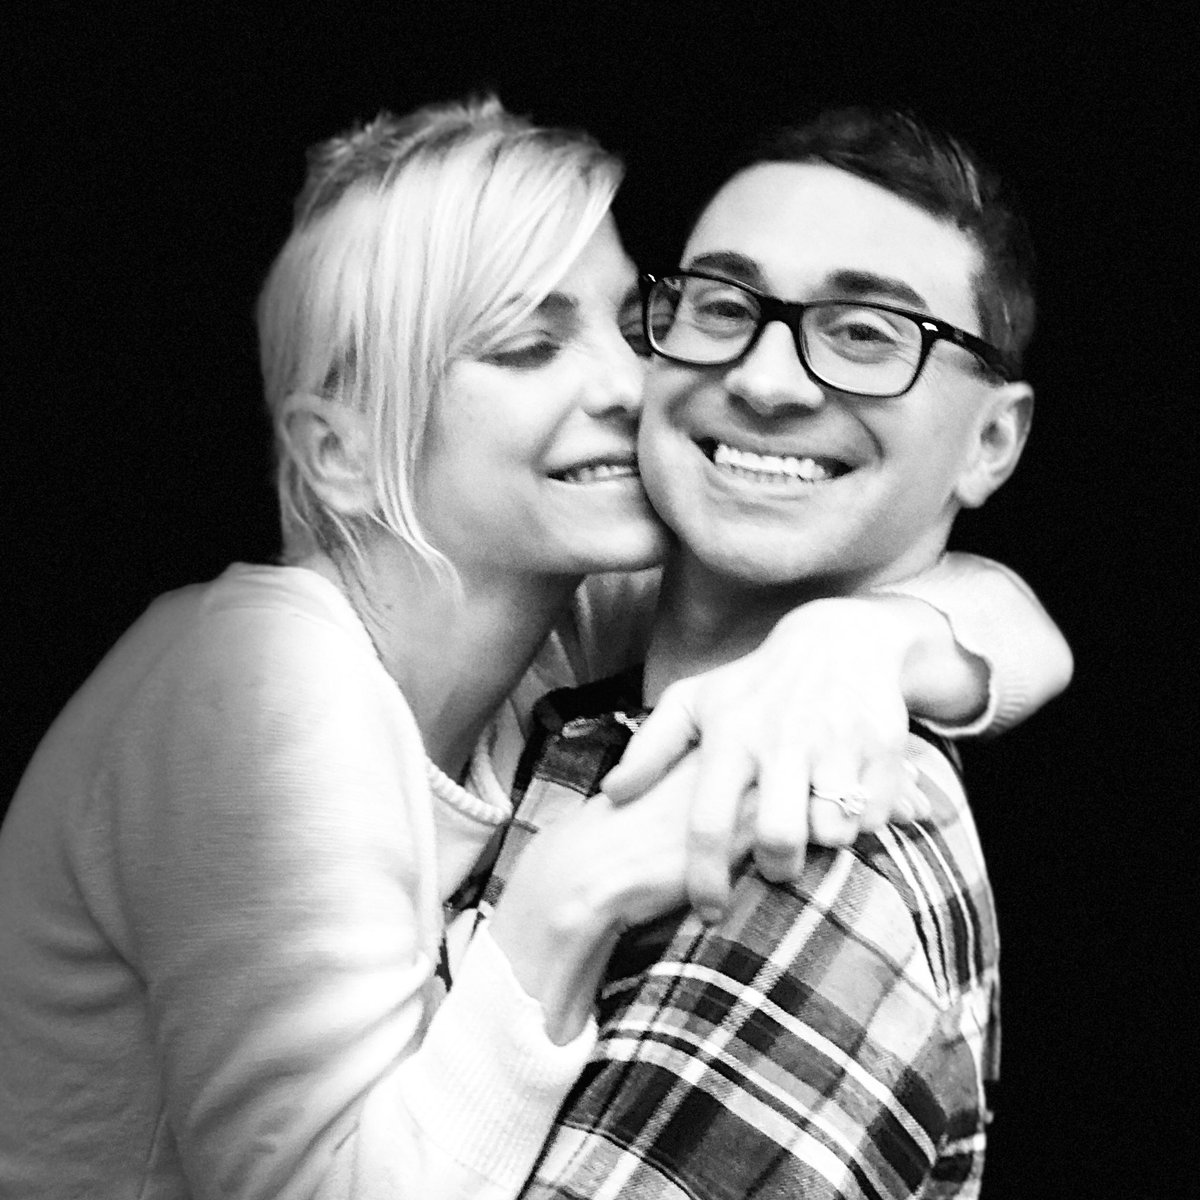 .@CSiriano is on @Unqualified this week! apple.co/35UFzeE